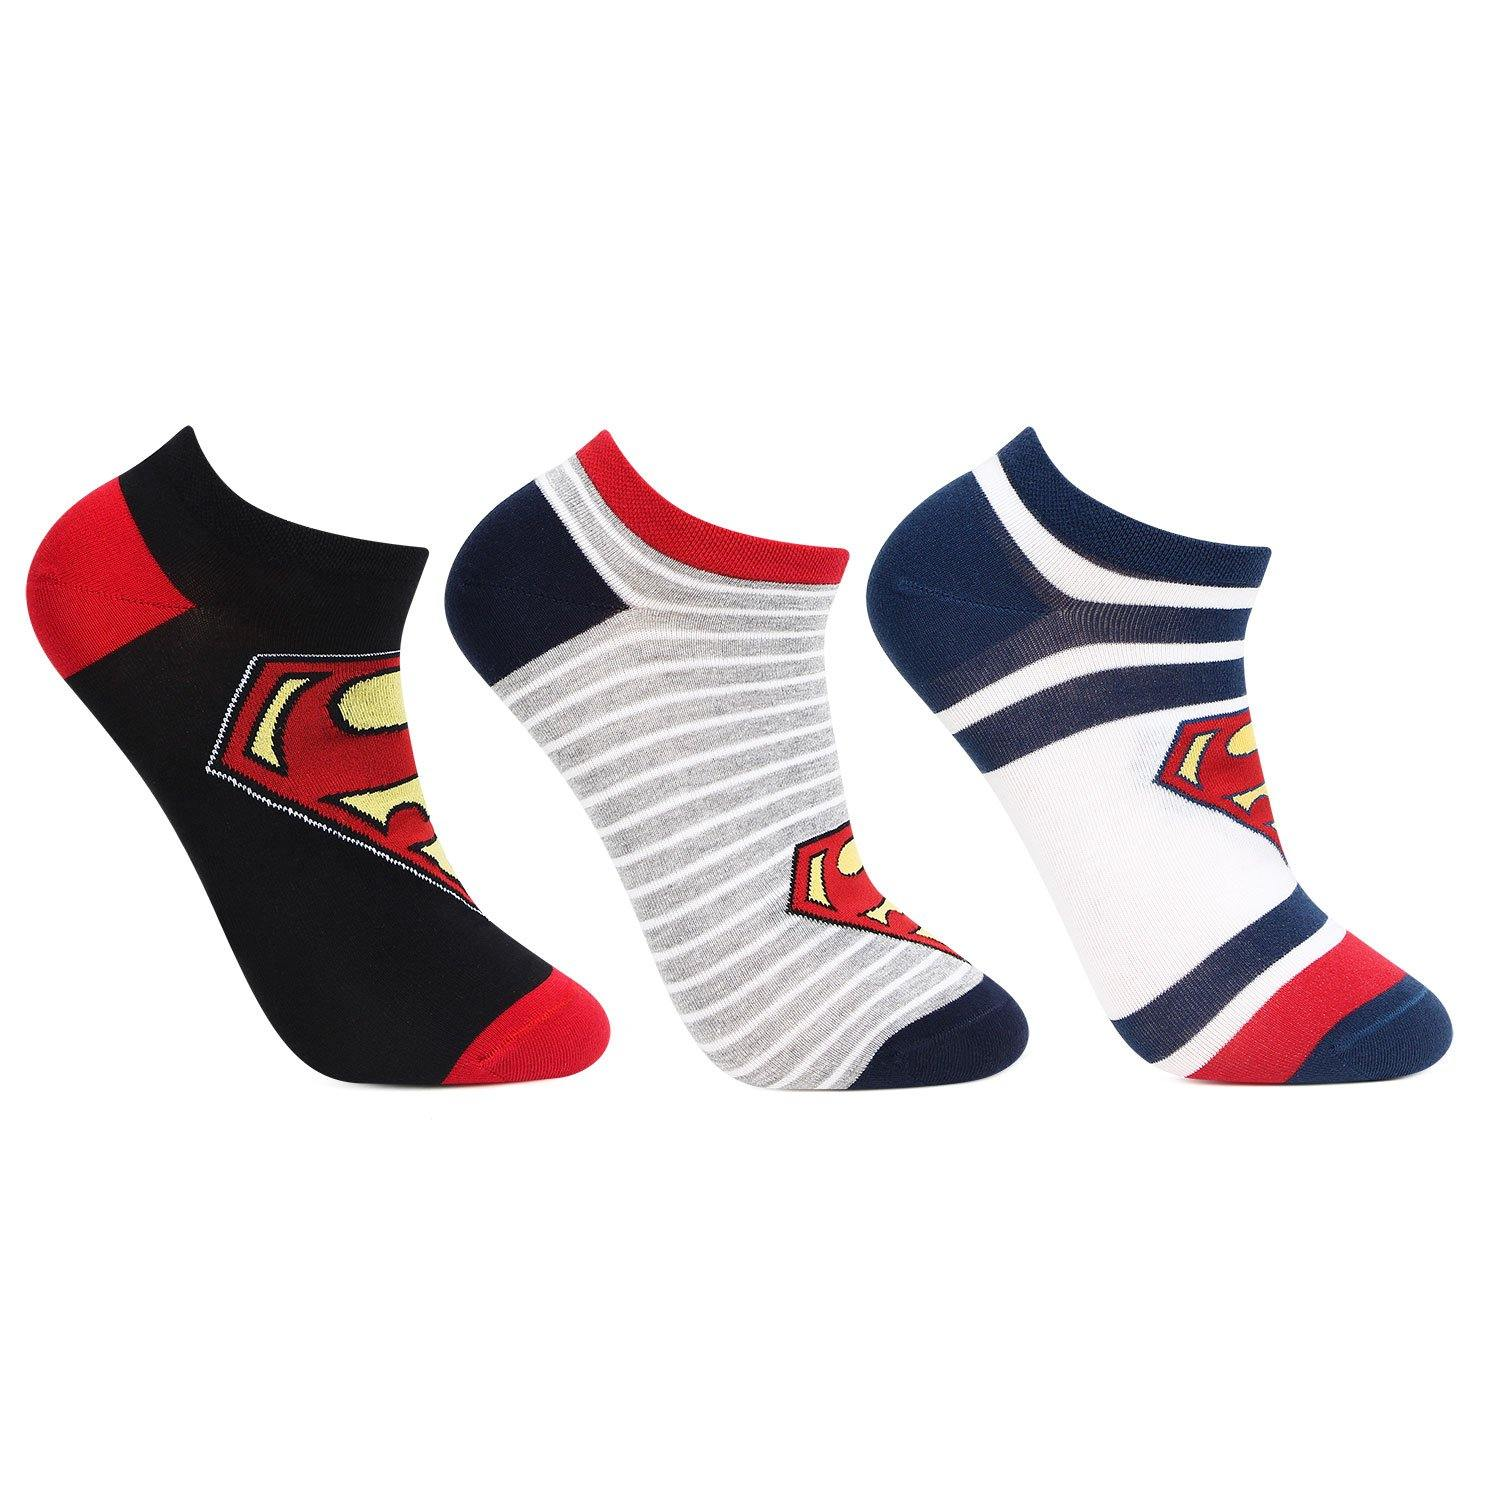 Superman Secret -Length Socks For Men - Pack Of 3